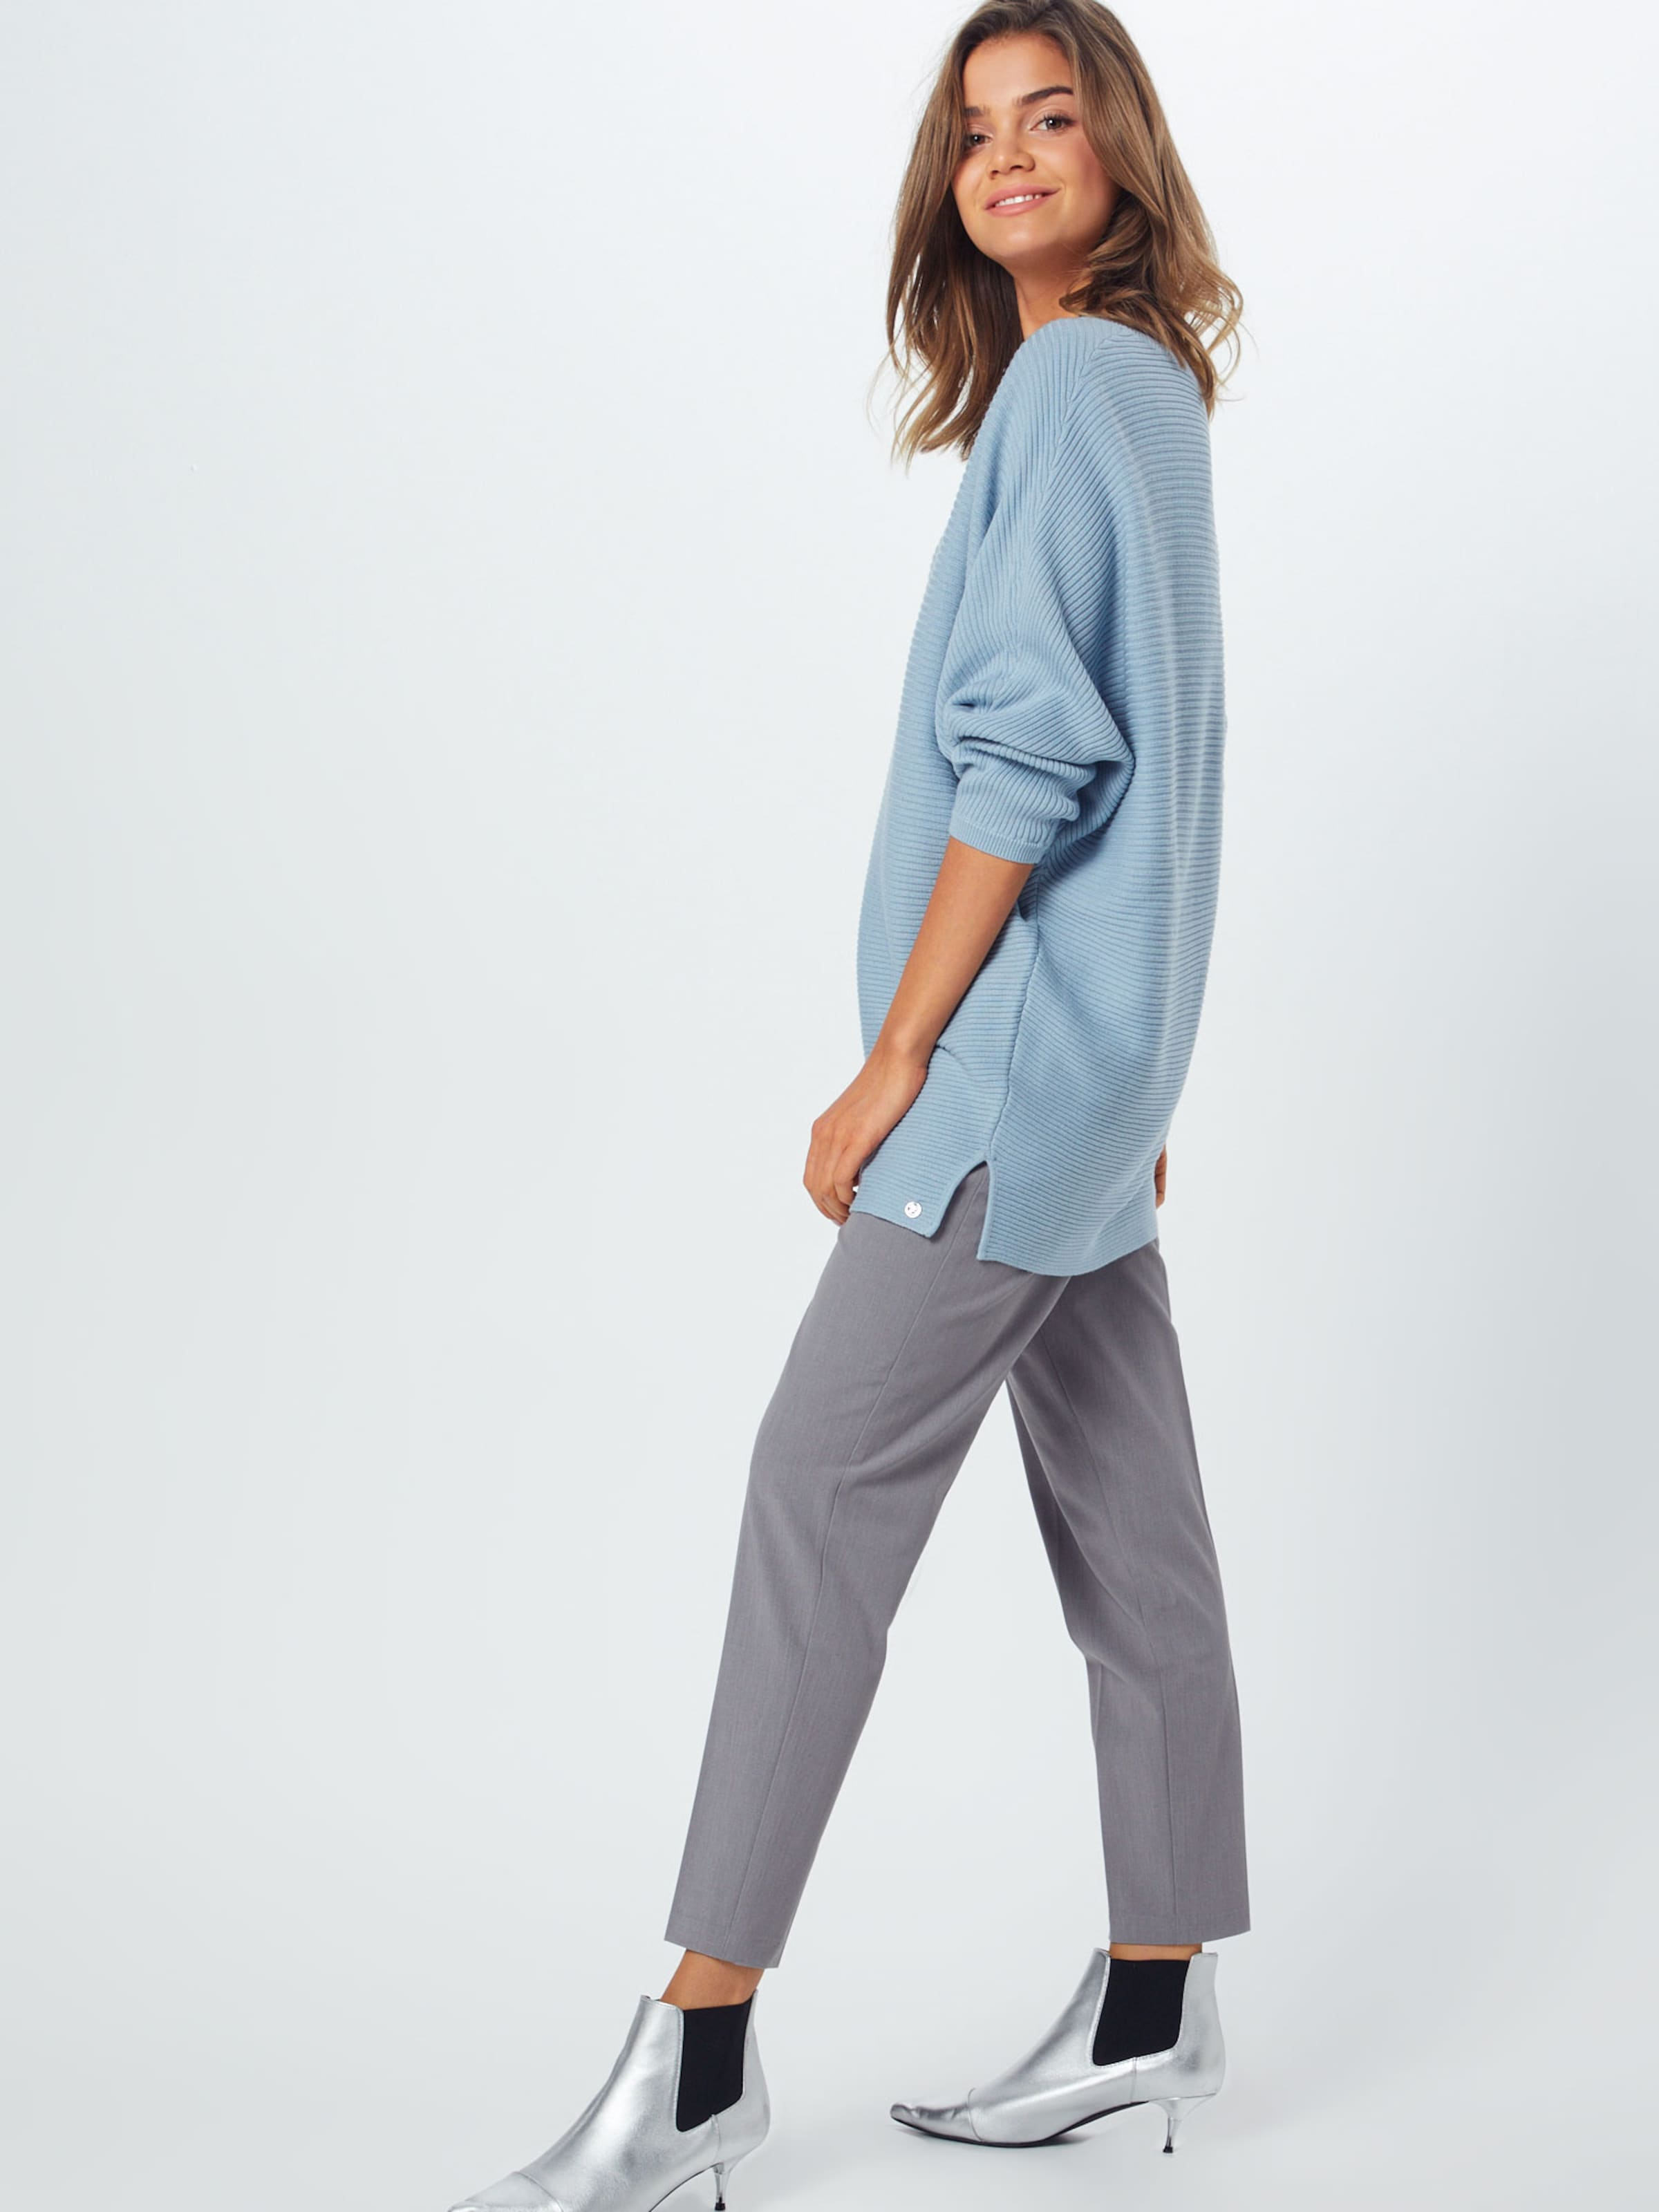 Denim Blue In Tom Tailor Smoky 'ottoman' Trui yO8nvmPwN0